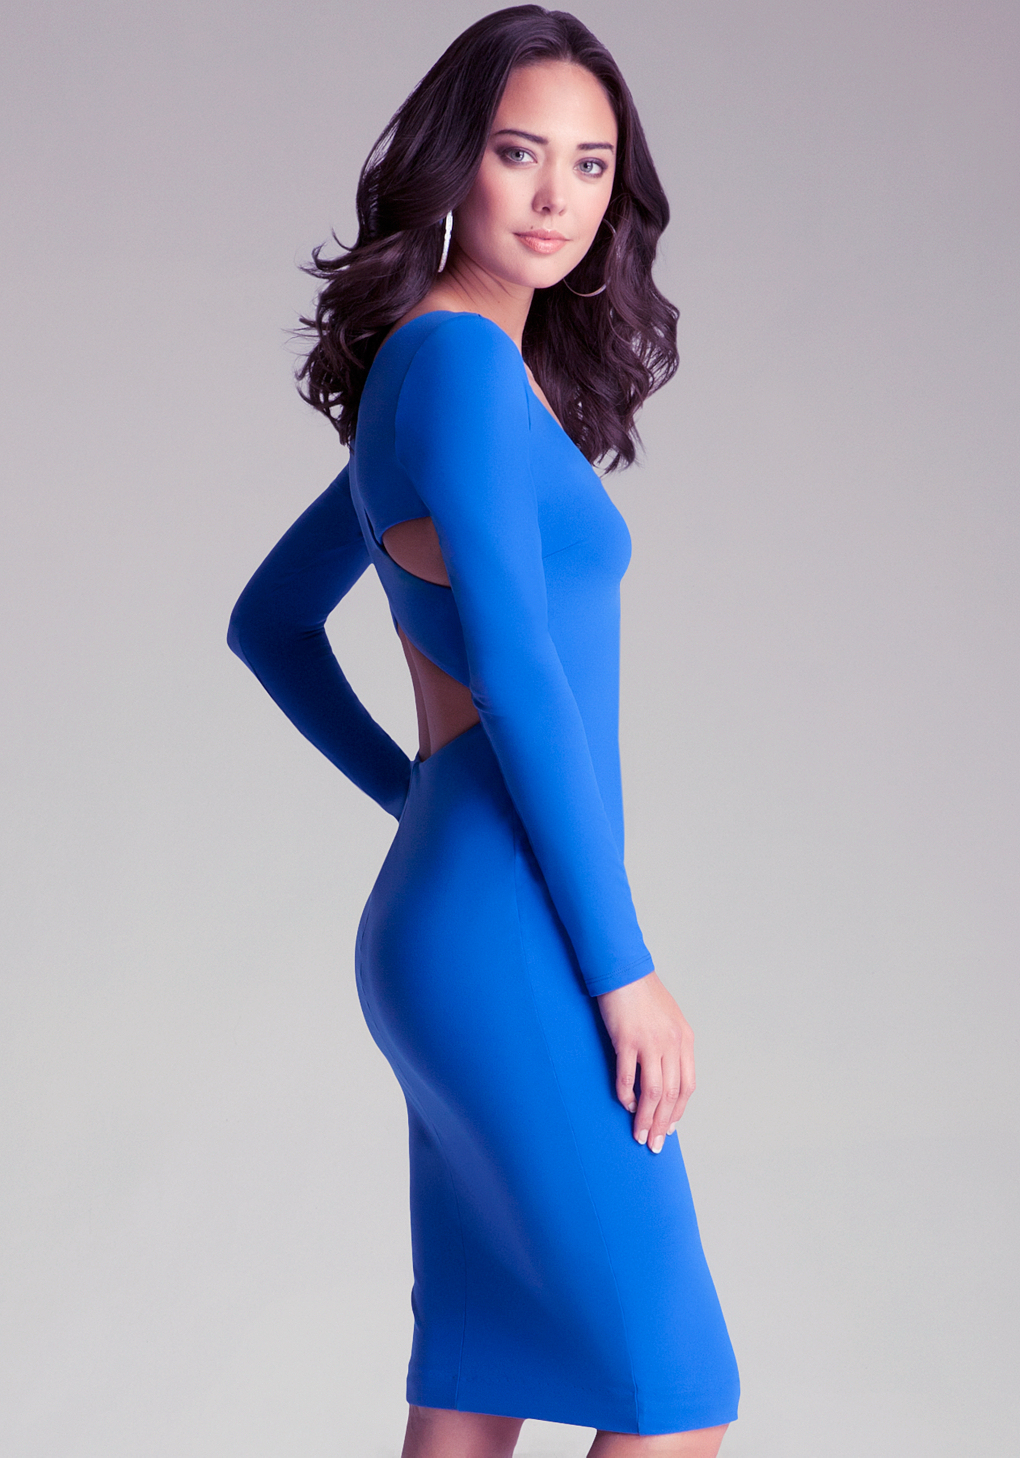 Buy Elle cap sleeves ice blue low zipper up prom dresses Online.